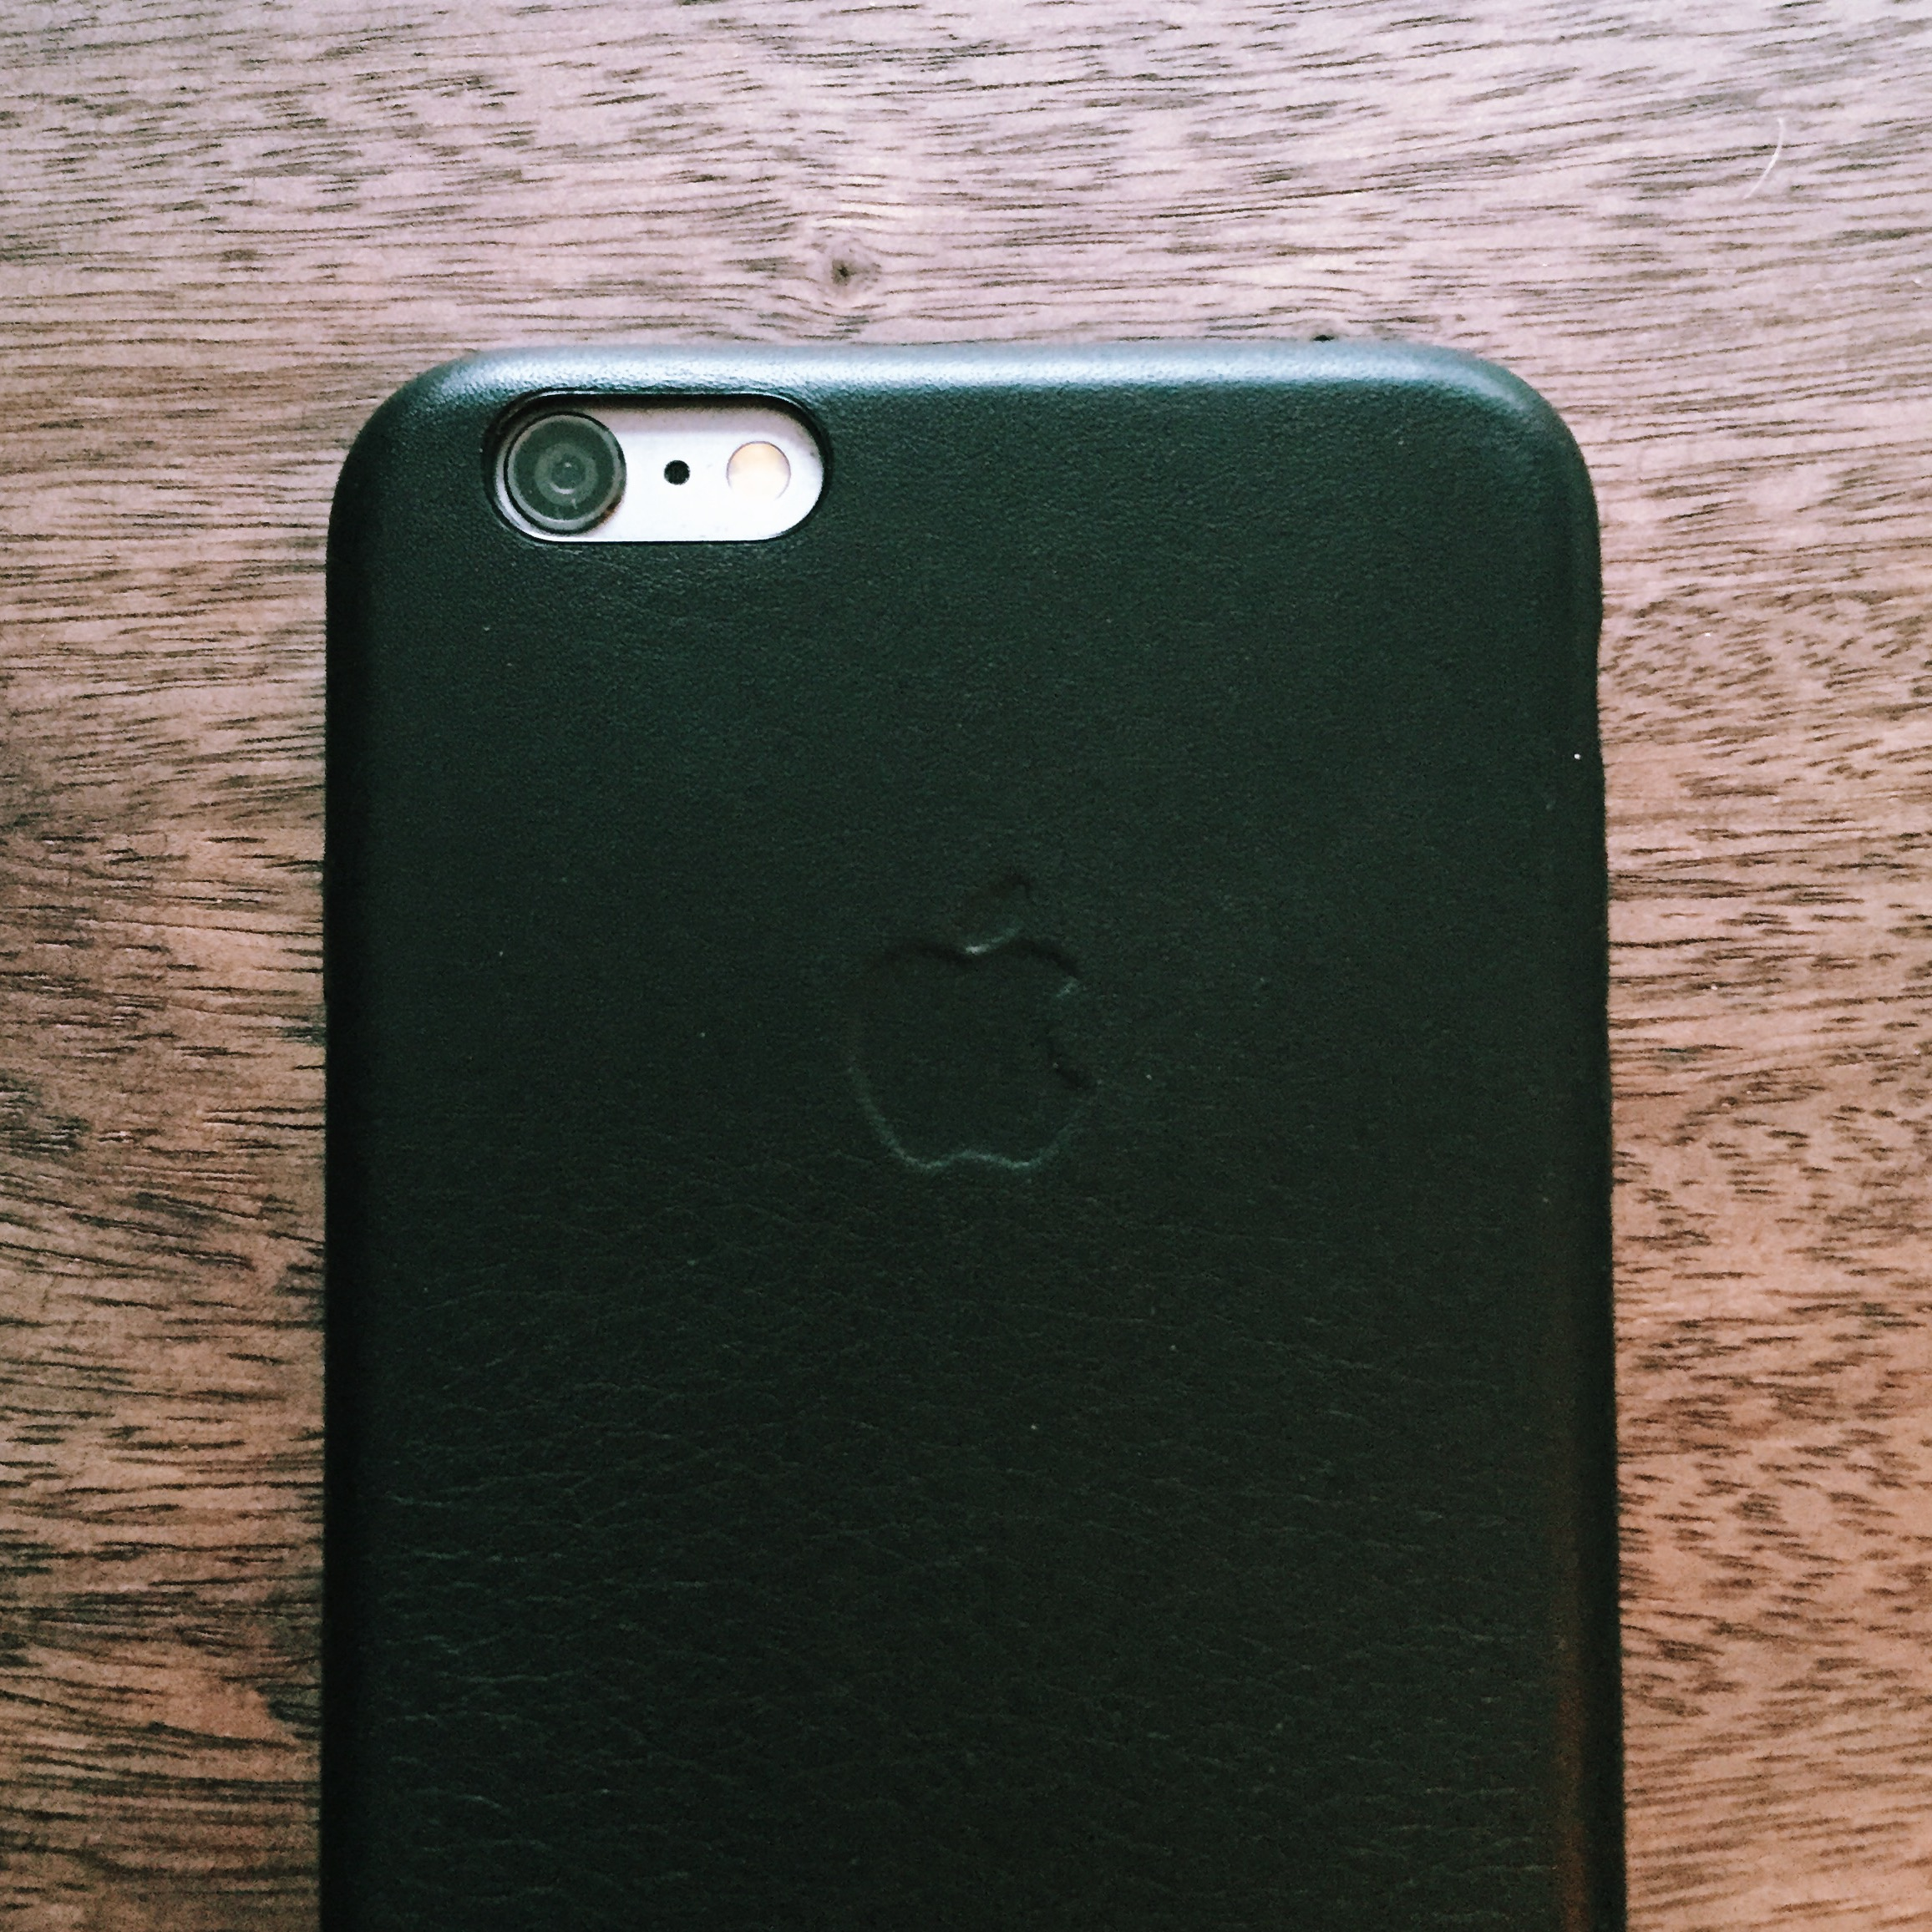 back of iphone 6 plus with black apple leather case